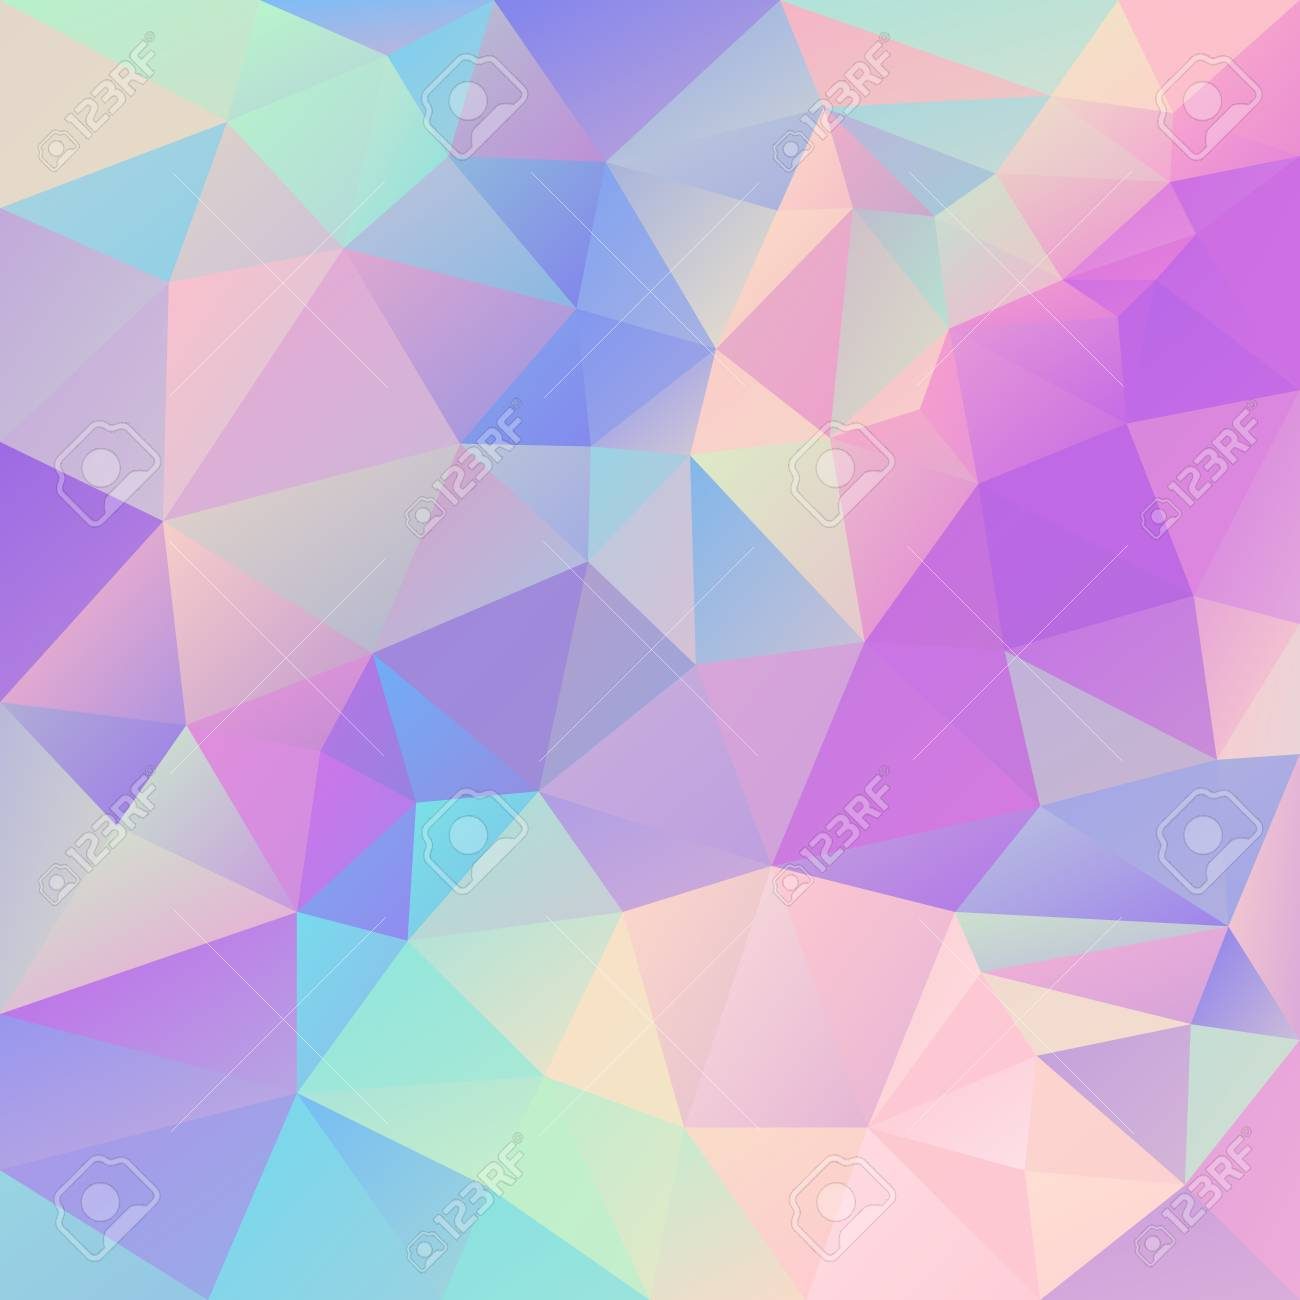 Vector Abstract Irregular Polygonal Background Cute Pastel Unicorn